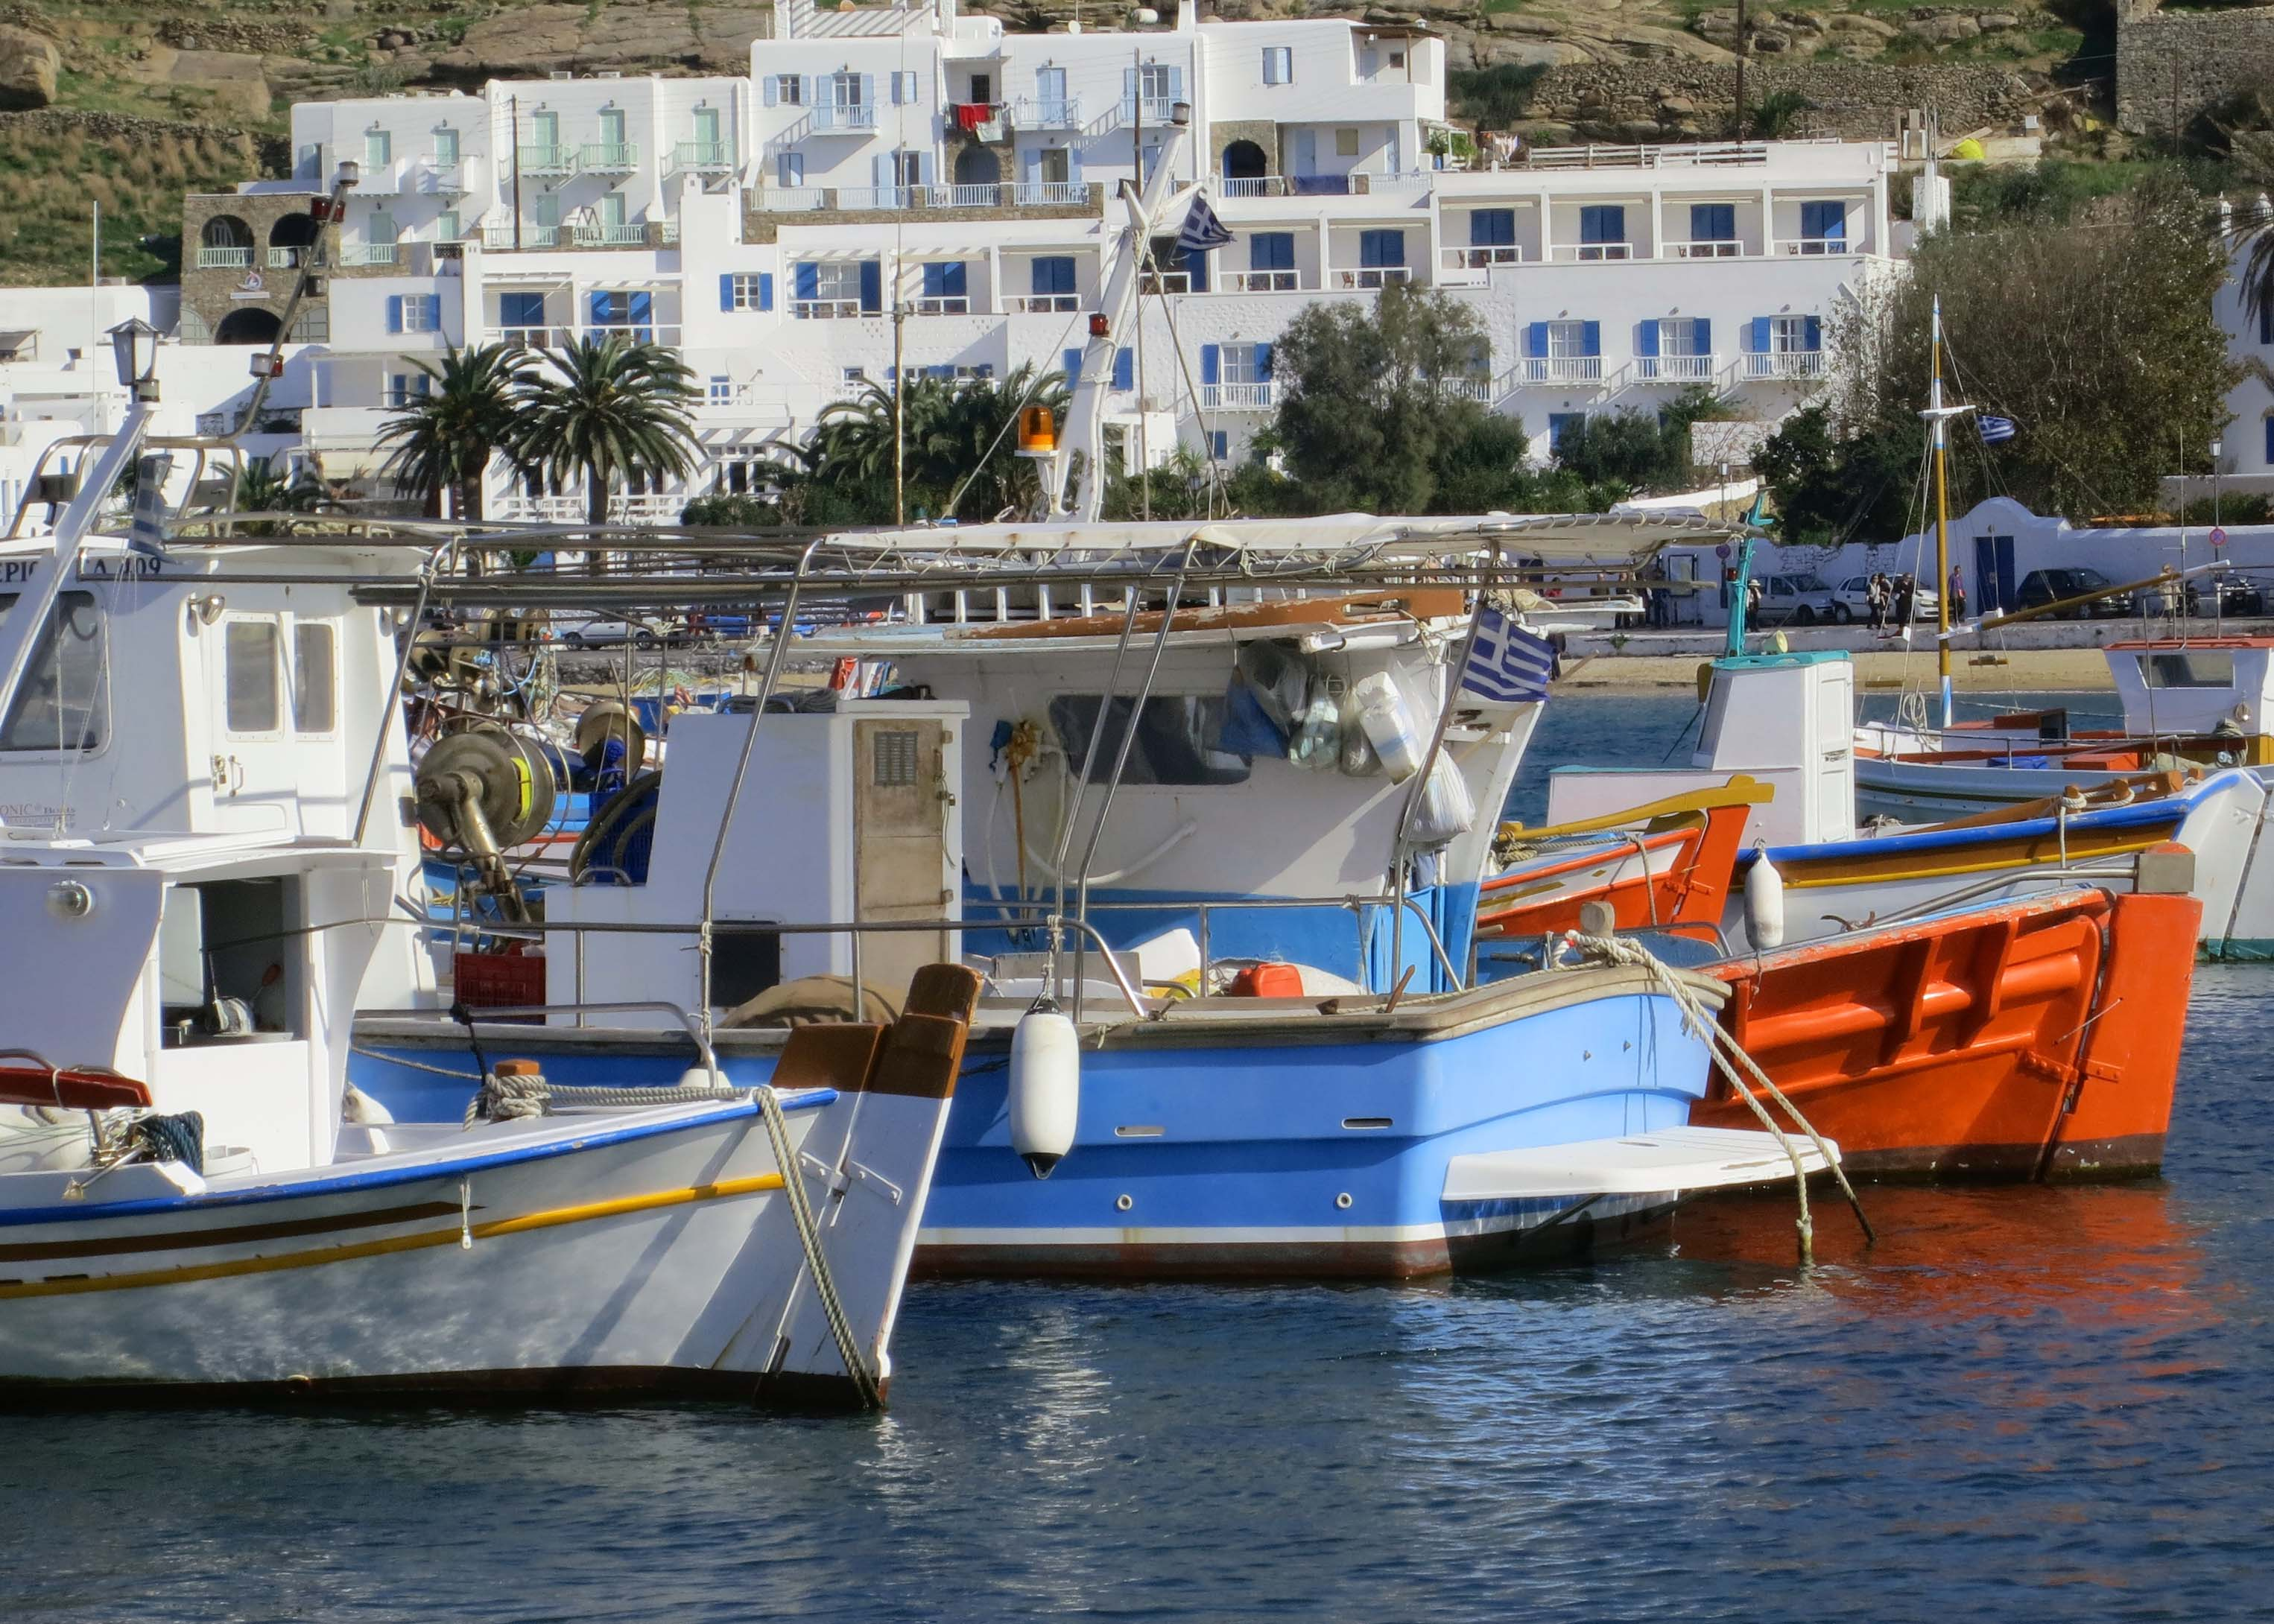 Idle fishing boats in the Mykonos harbor.